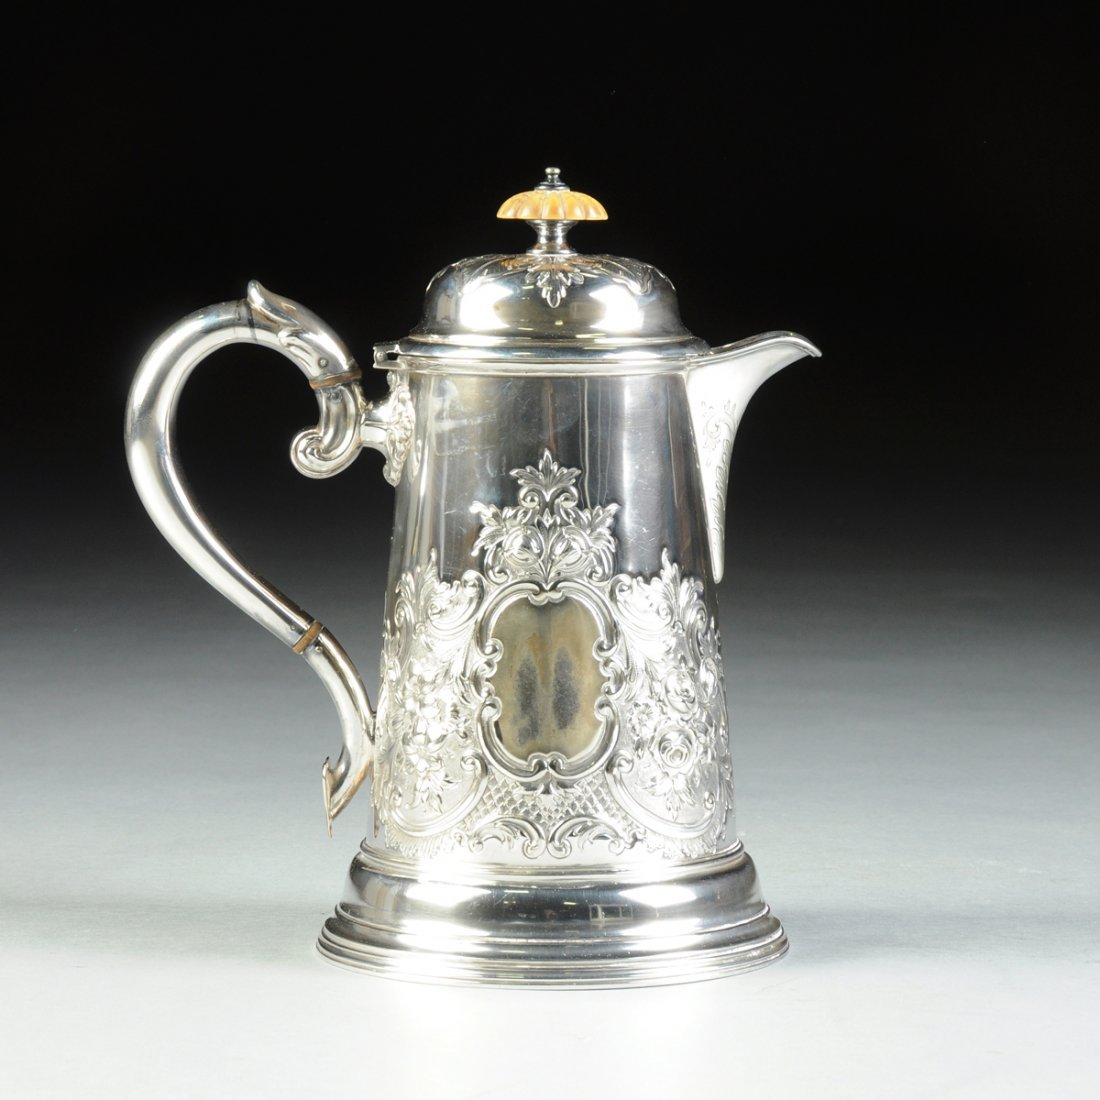 A VICTORIAN SILVER PLATED HOT WATER JUG WITH LID,